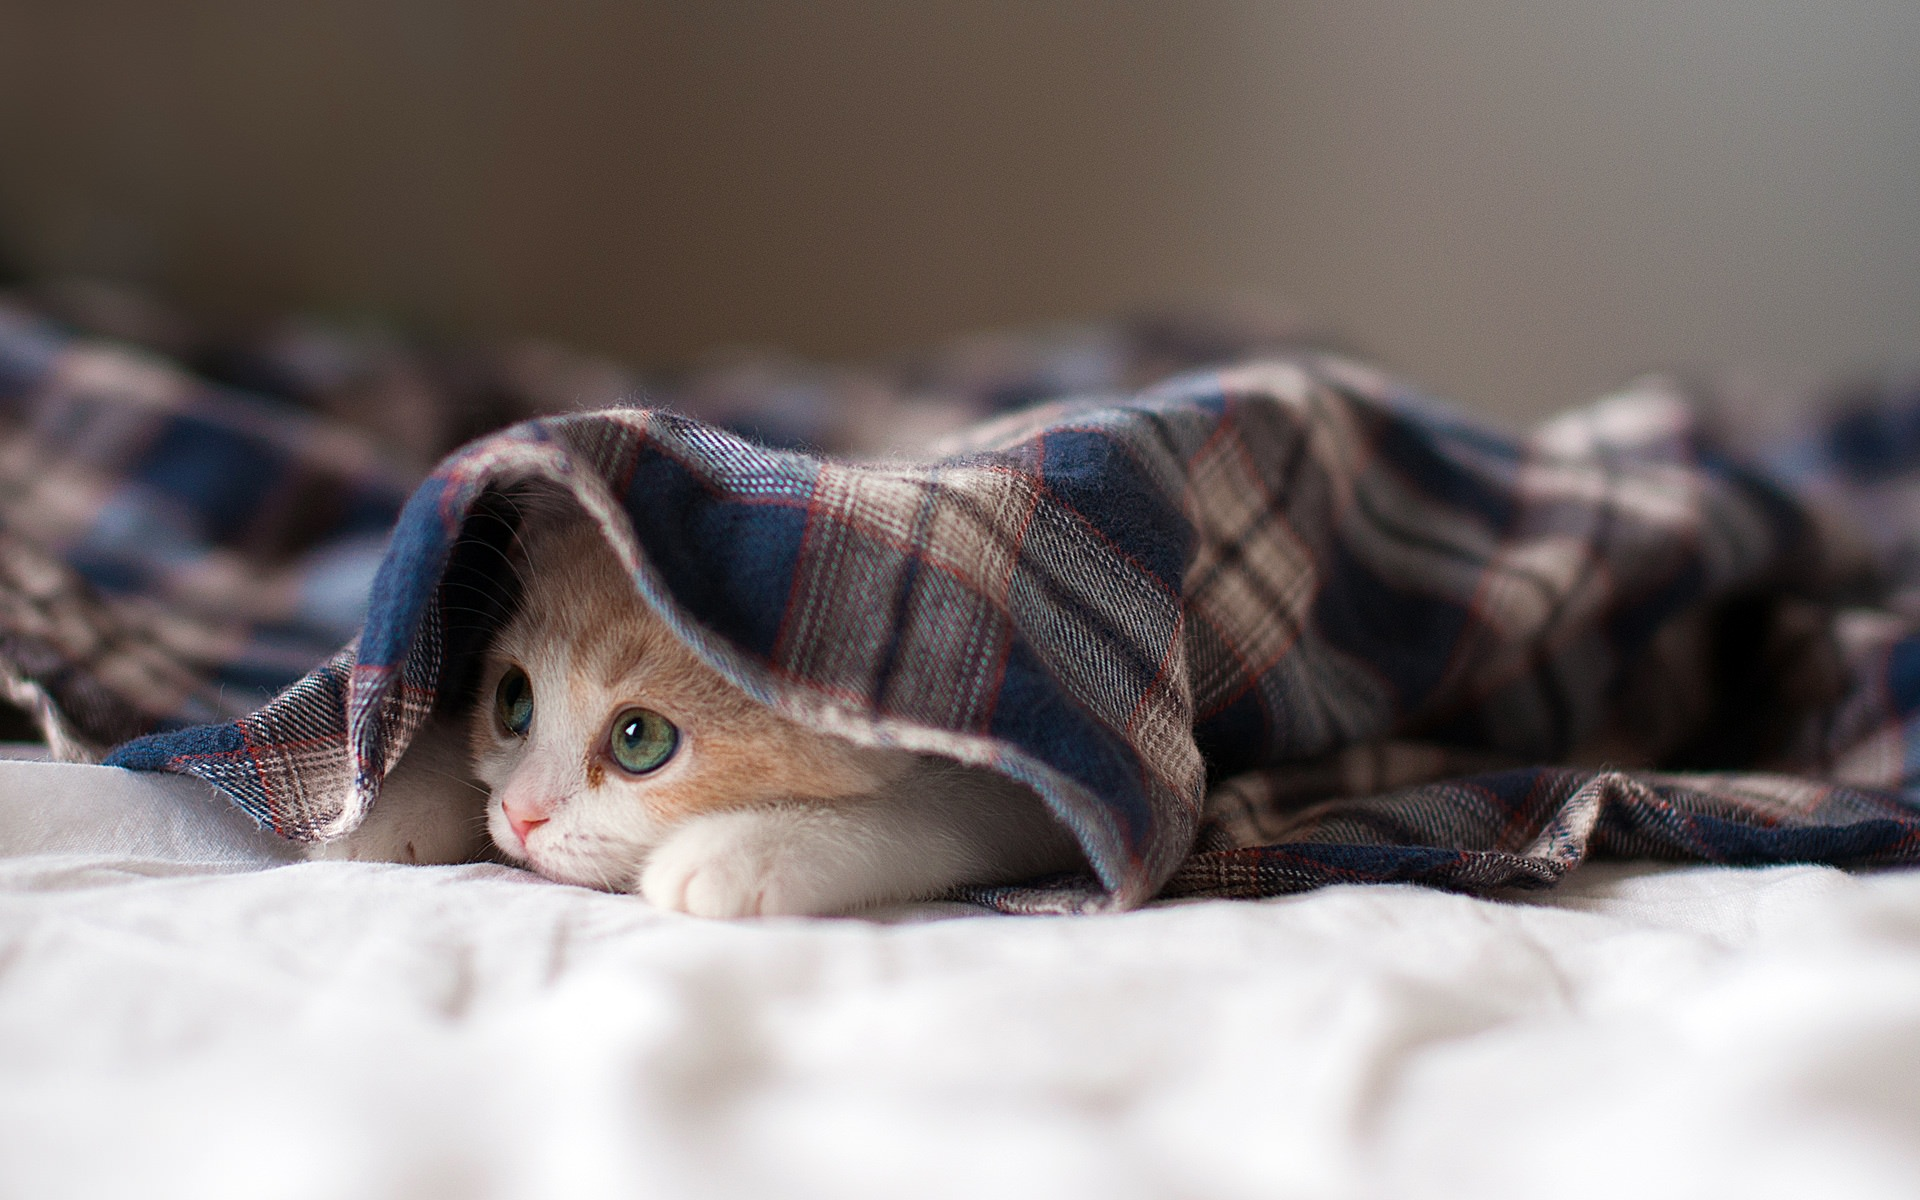 Sleepy Cute Kitten Wallpaper